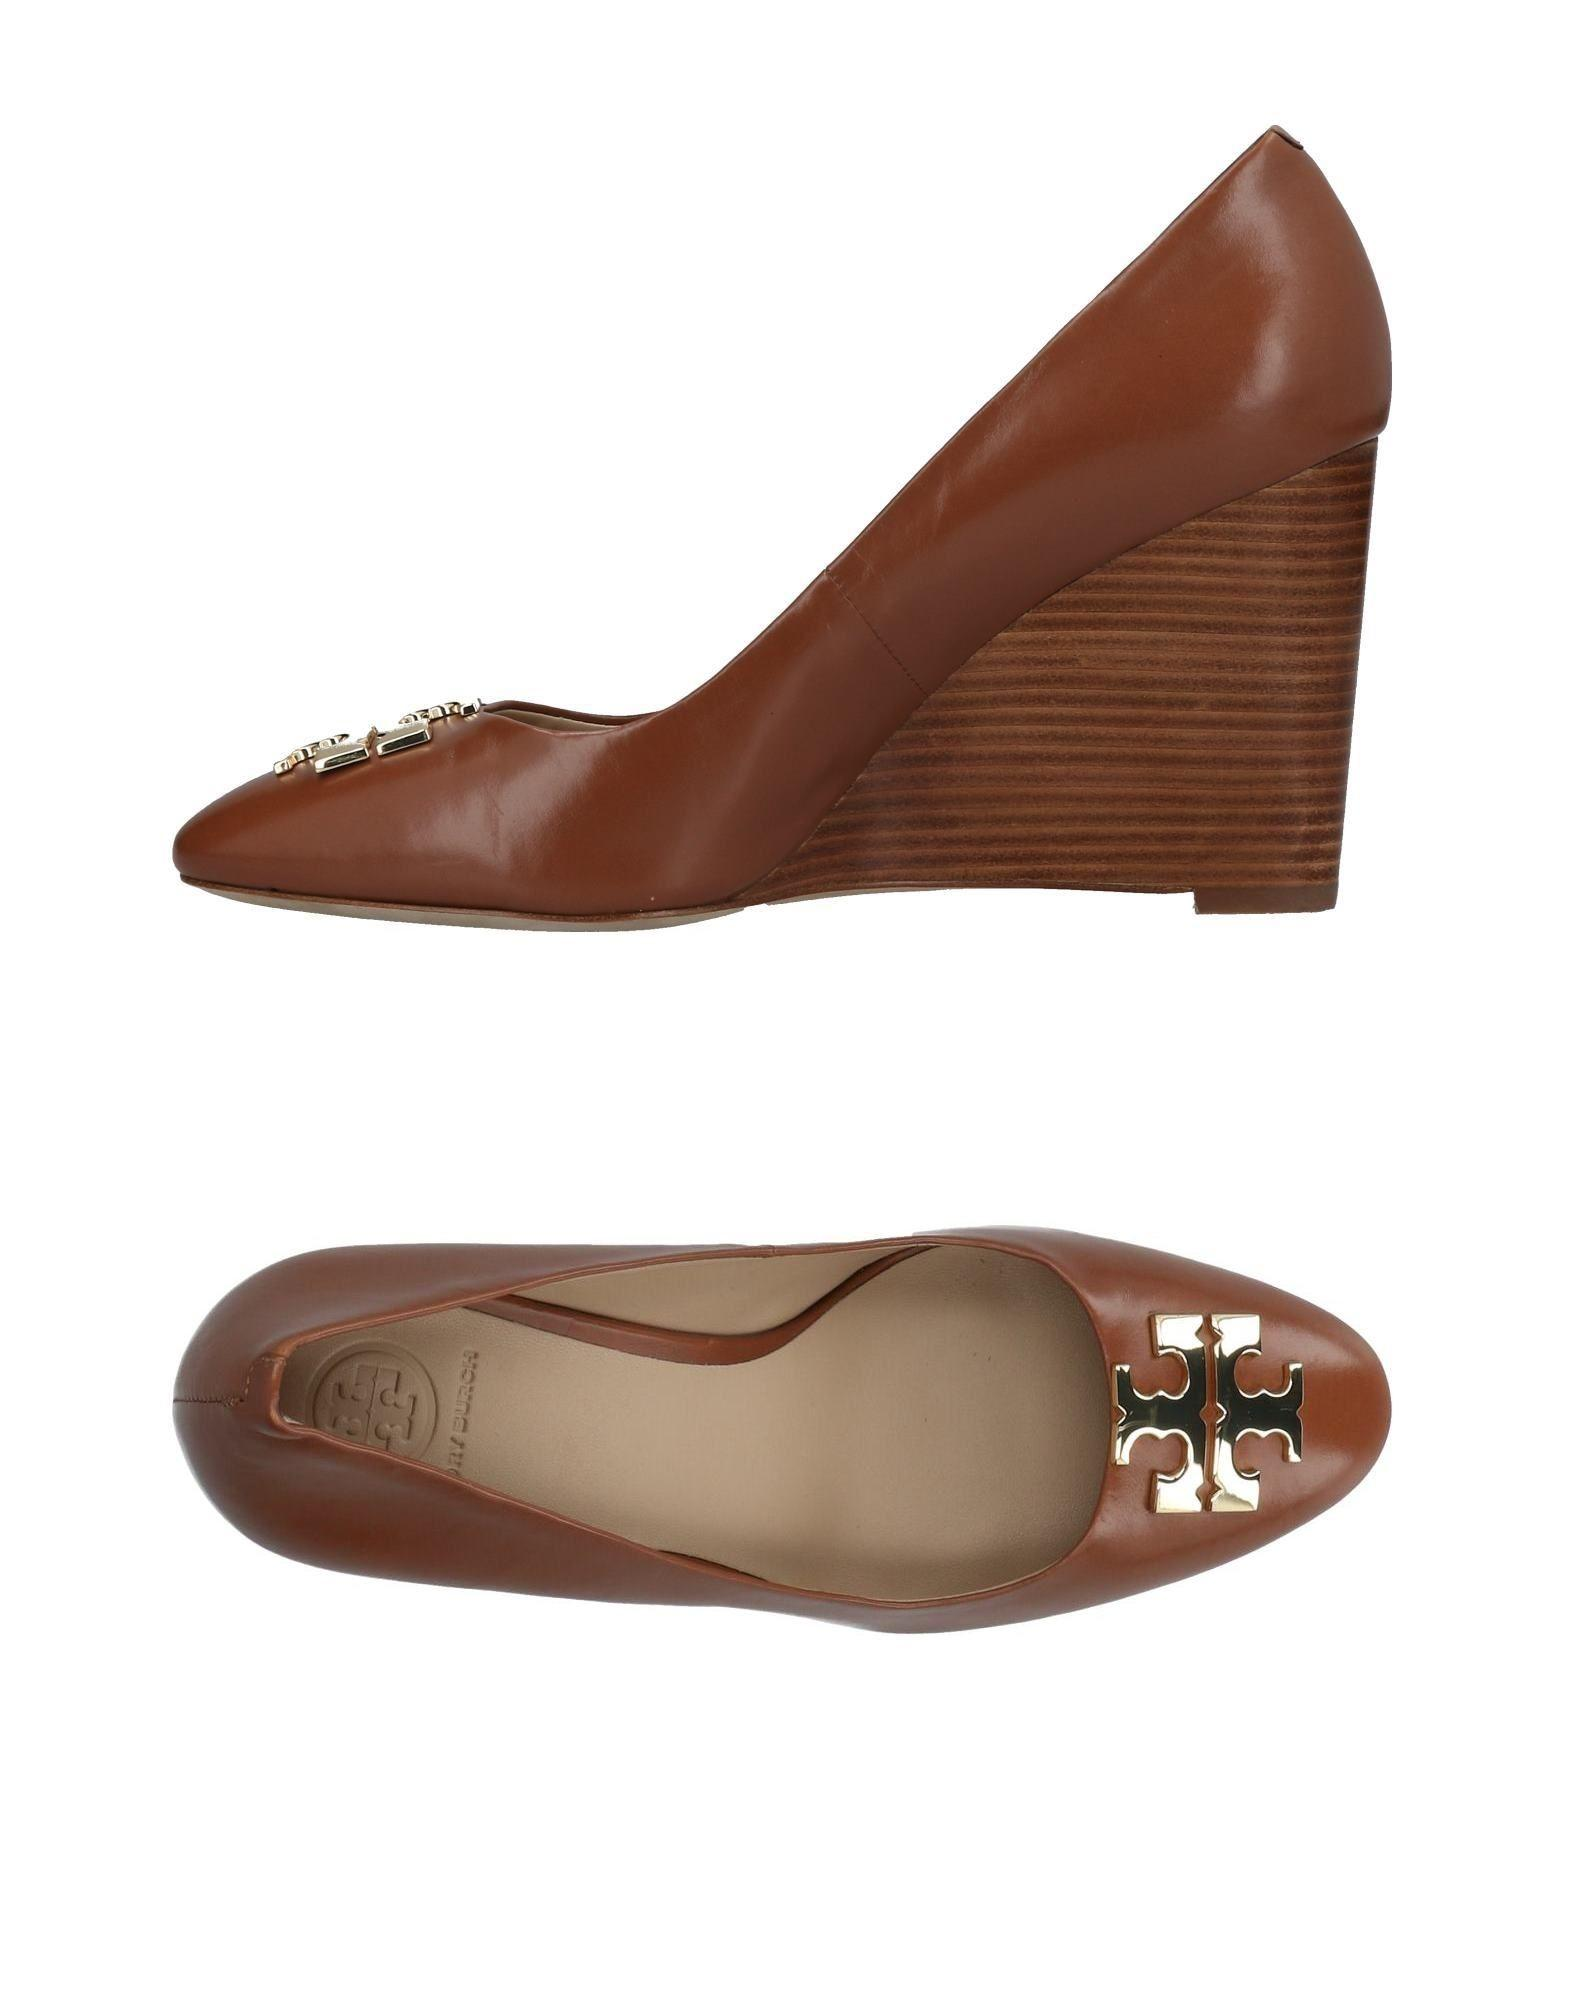 Tory Burch Pumps In Brown